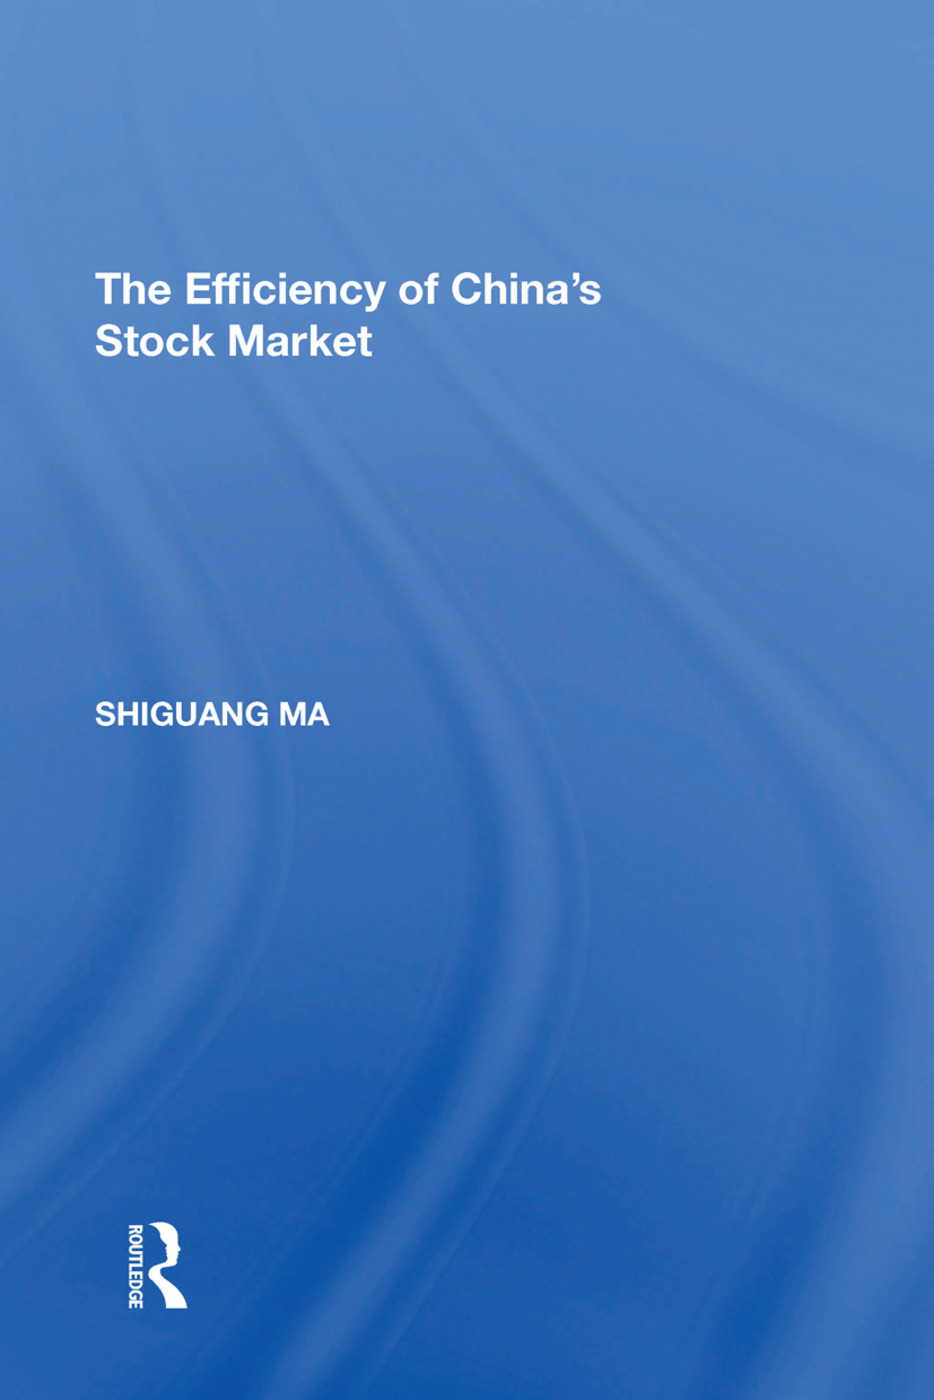 The Efficiency of China's Stock Market